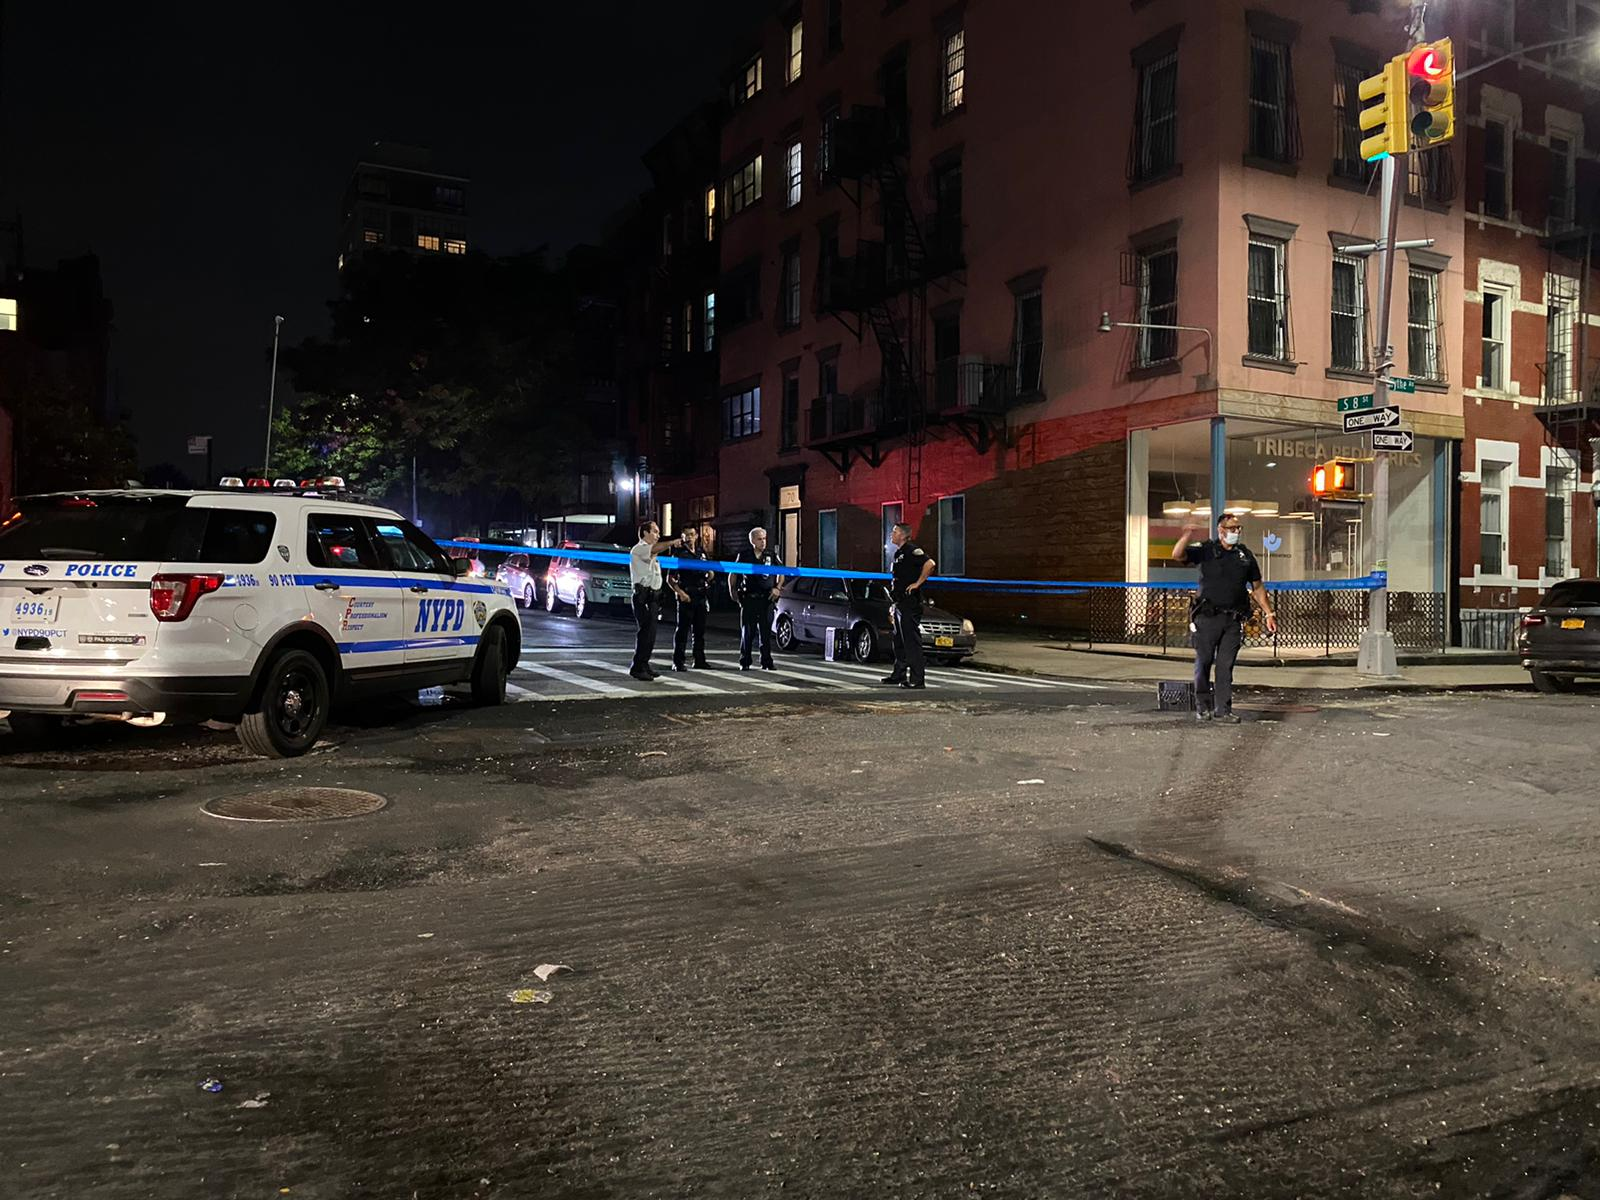 Two Bullet shells found In Williamsburg after NYPD receives call for shots fired.